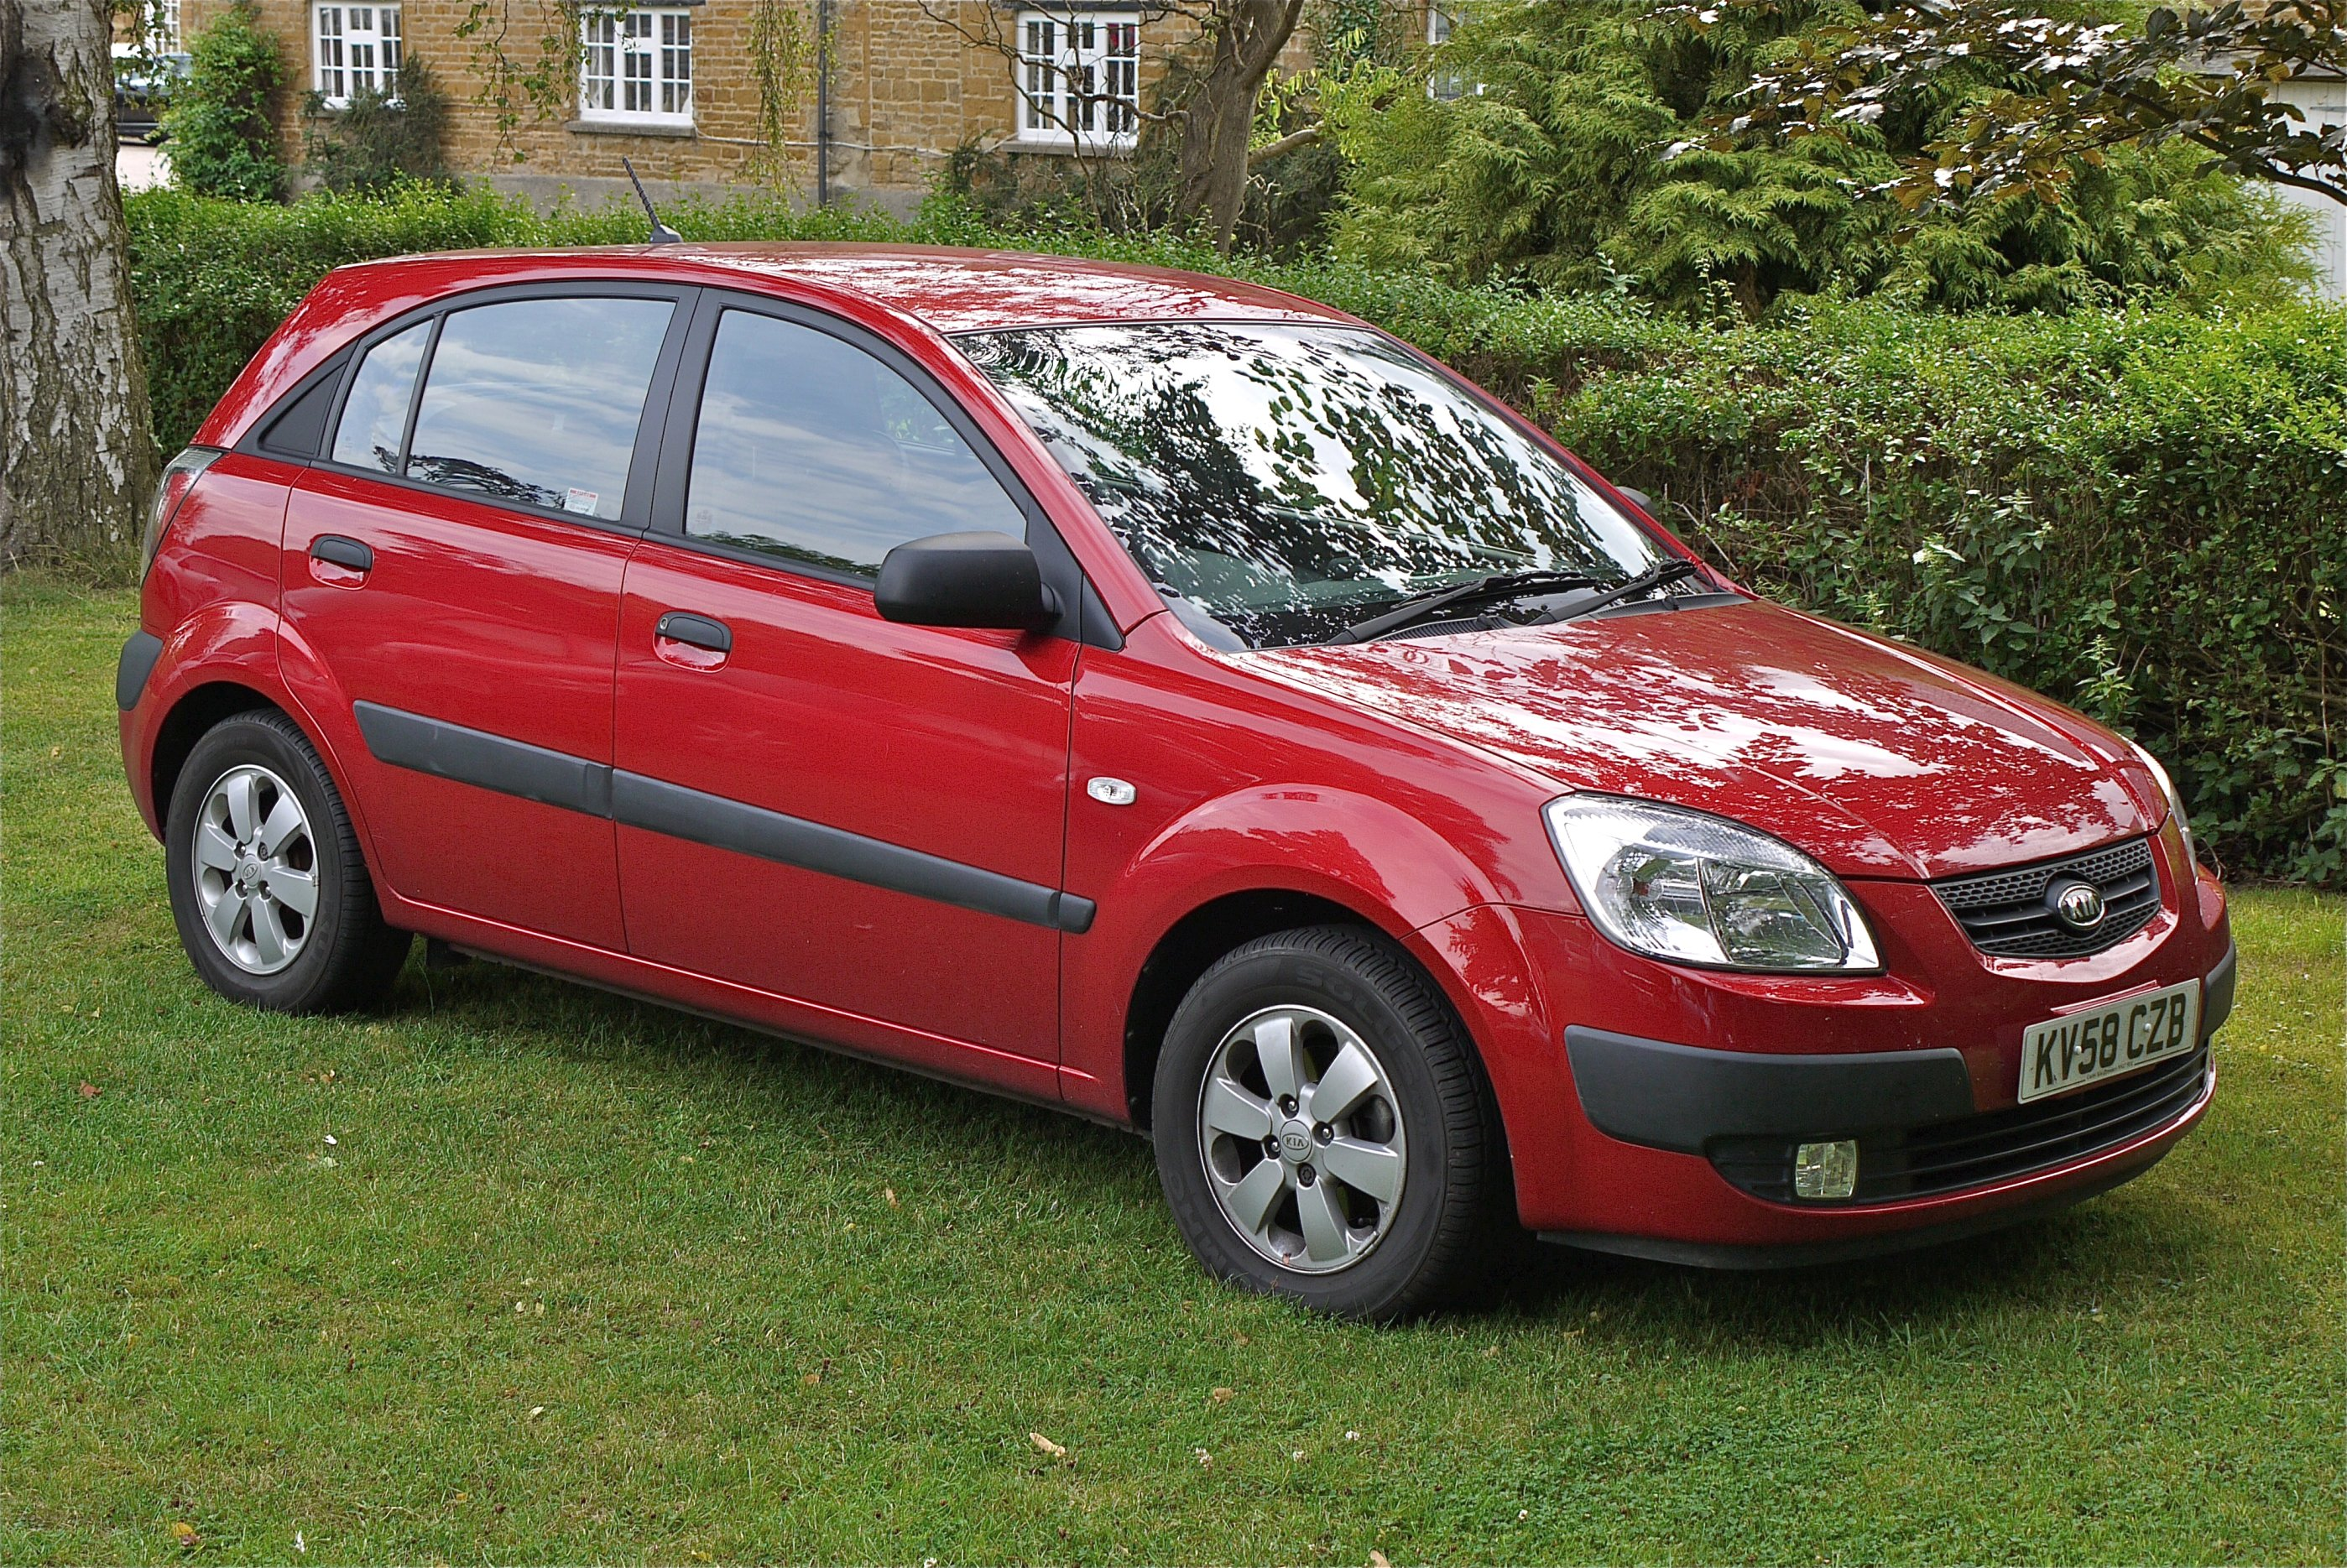 kia rio - flickr - mick - lumix jpg